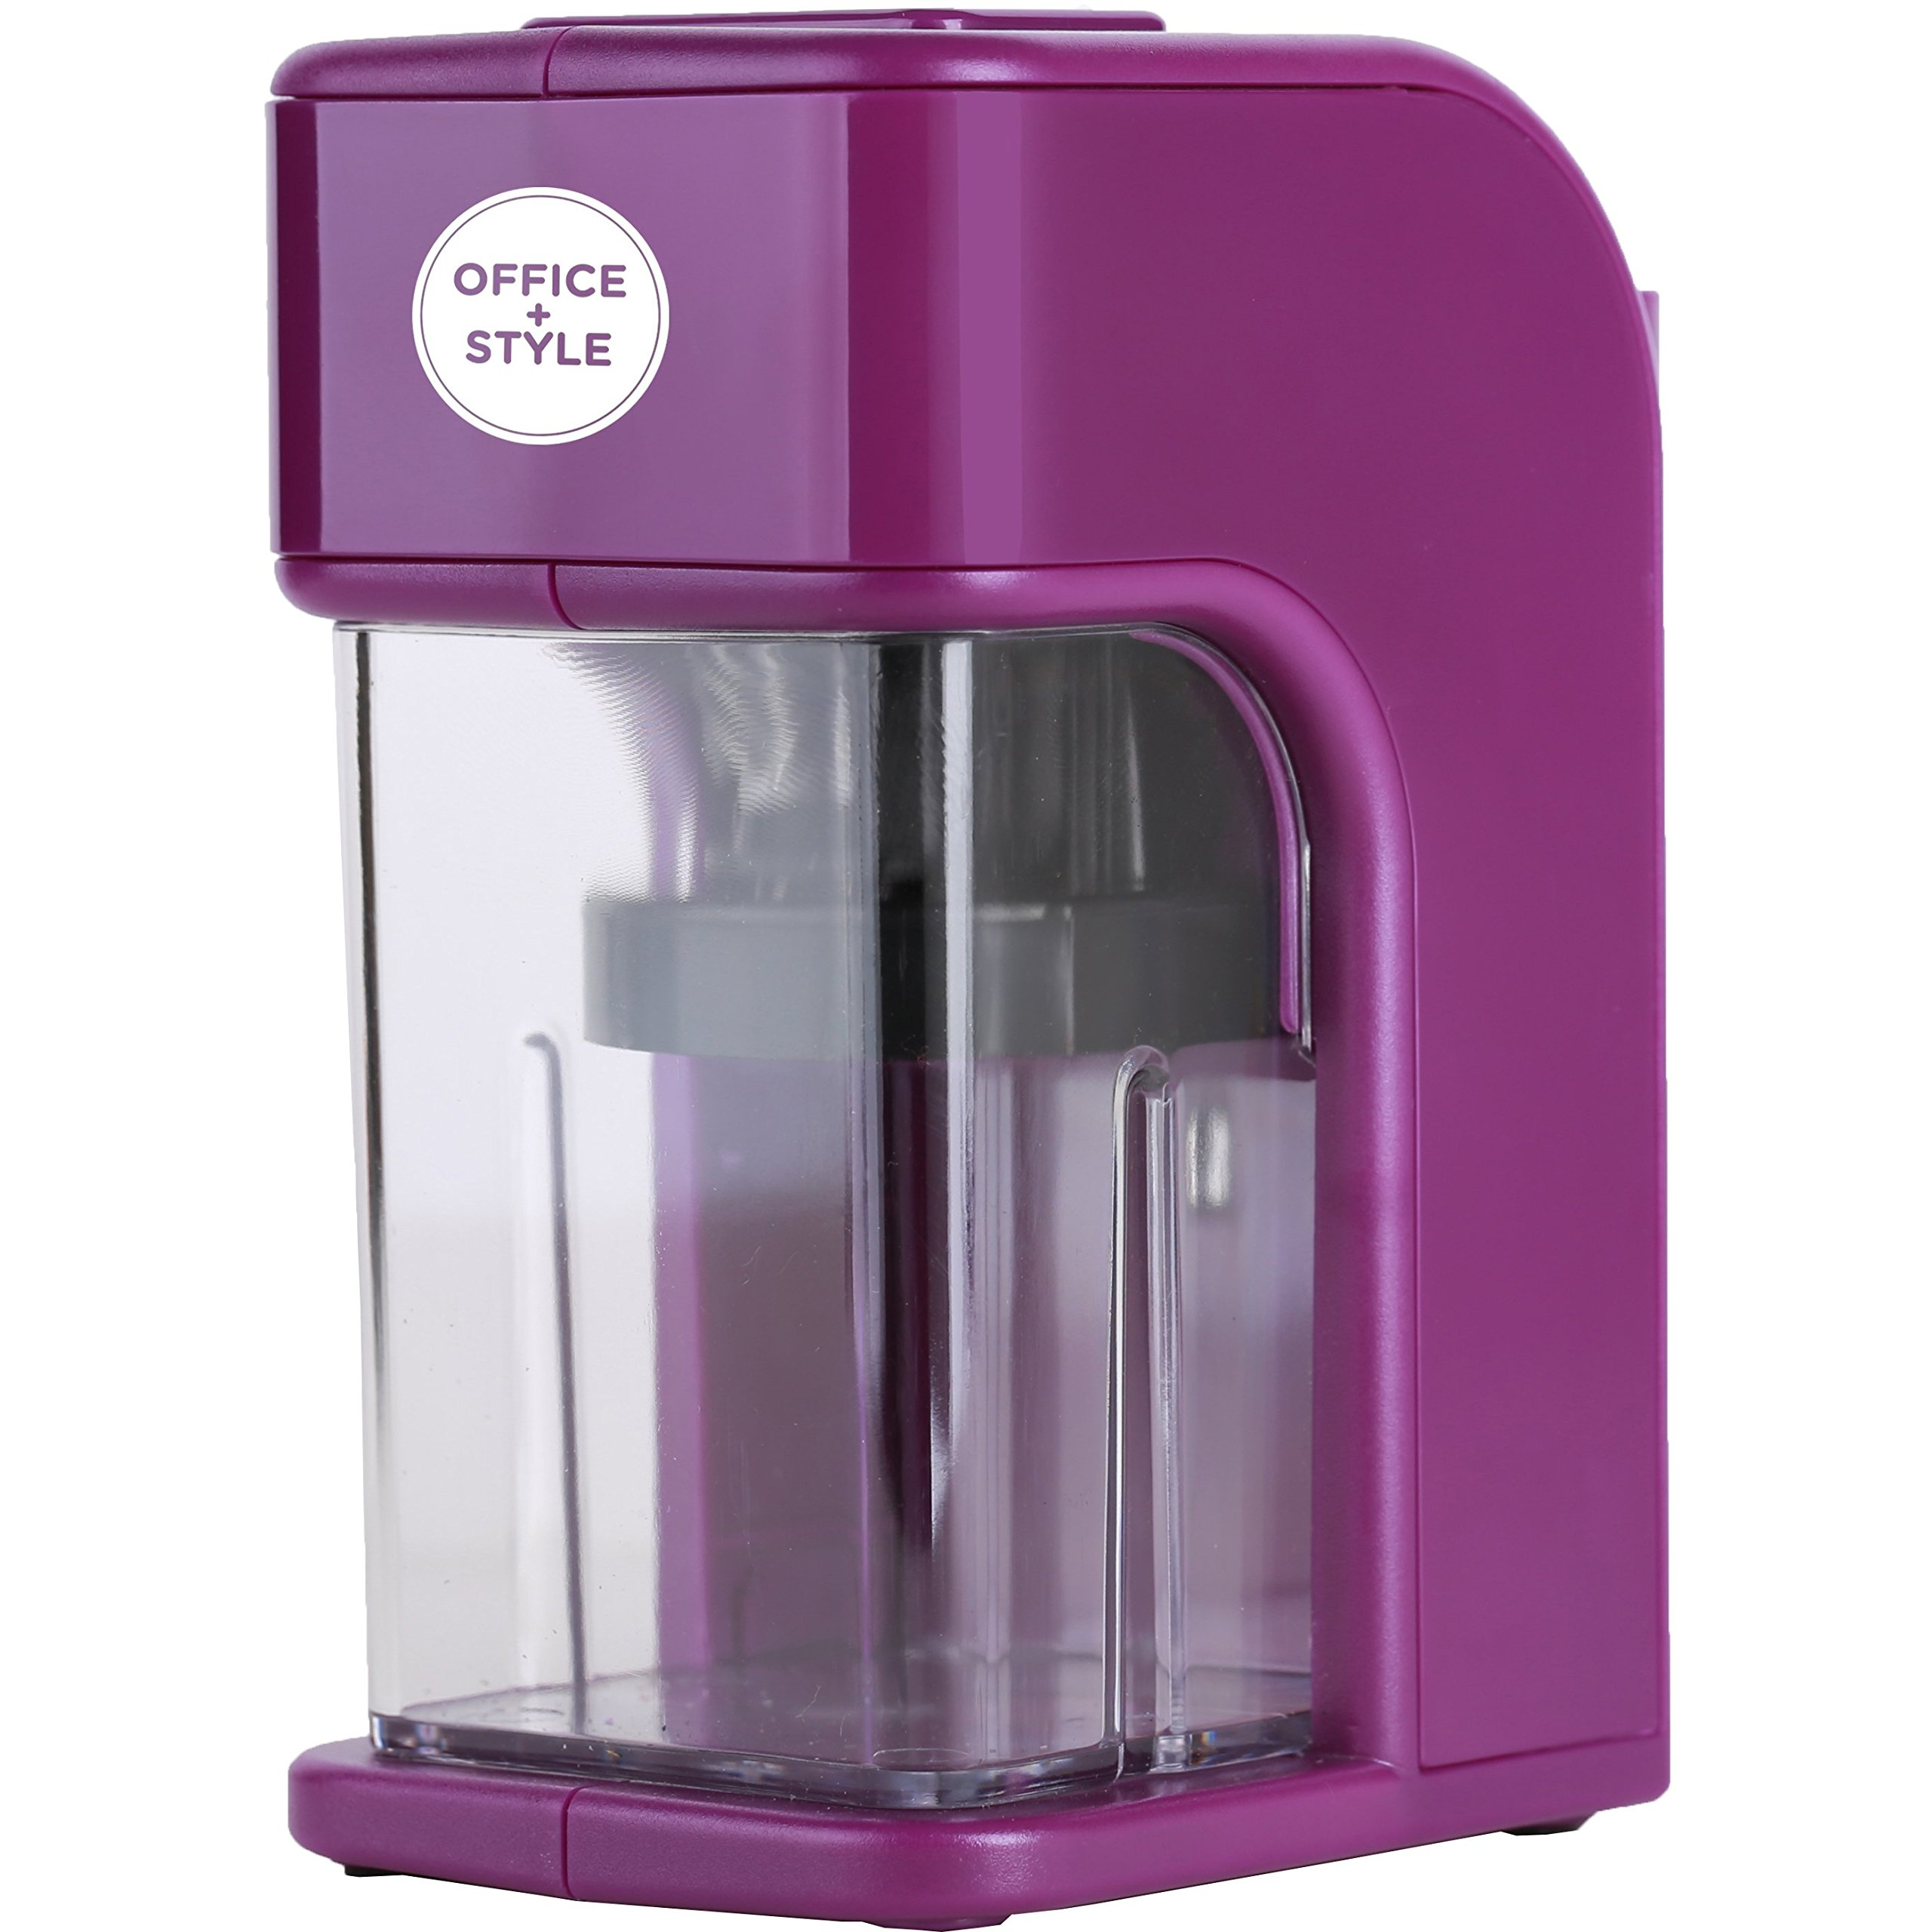 Electronic Pencil Sharpener With Auto Stop Safety Feature & Large Pencil Holder For Home, Office or Classroom, - Purple - By Office + Style